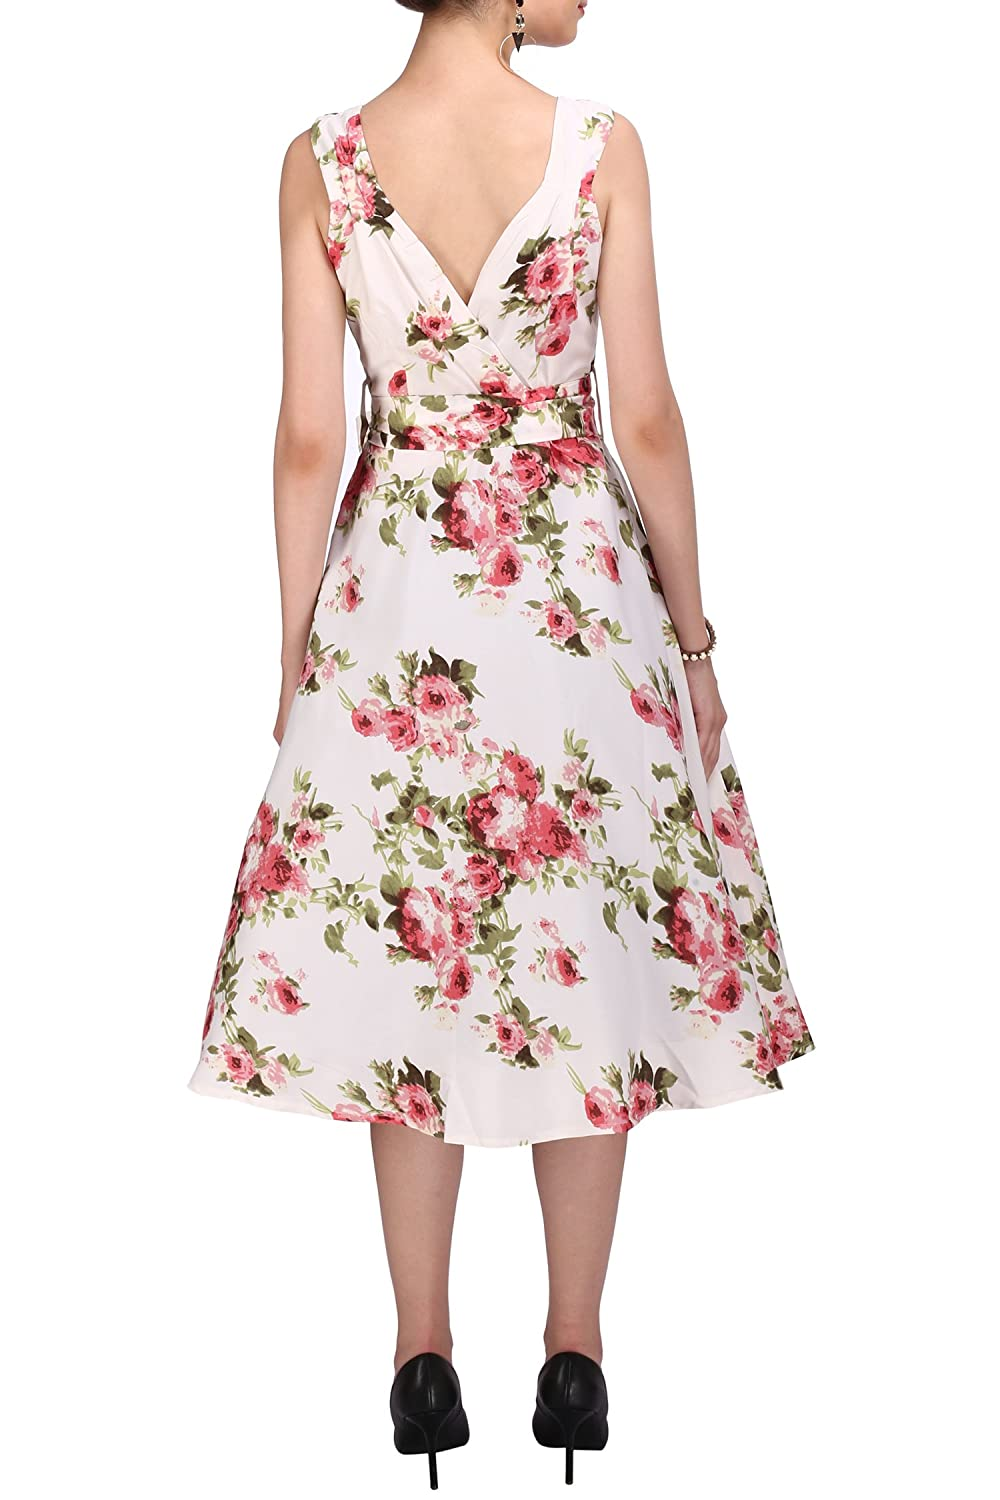 9711d61d0778 Dress 40s 50s Swing Vintage Rockabilly Ladies Retro Prom Party Plus Size  6-24 at Amazon Women's Clothing store: